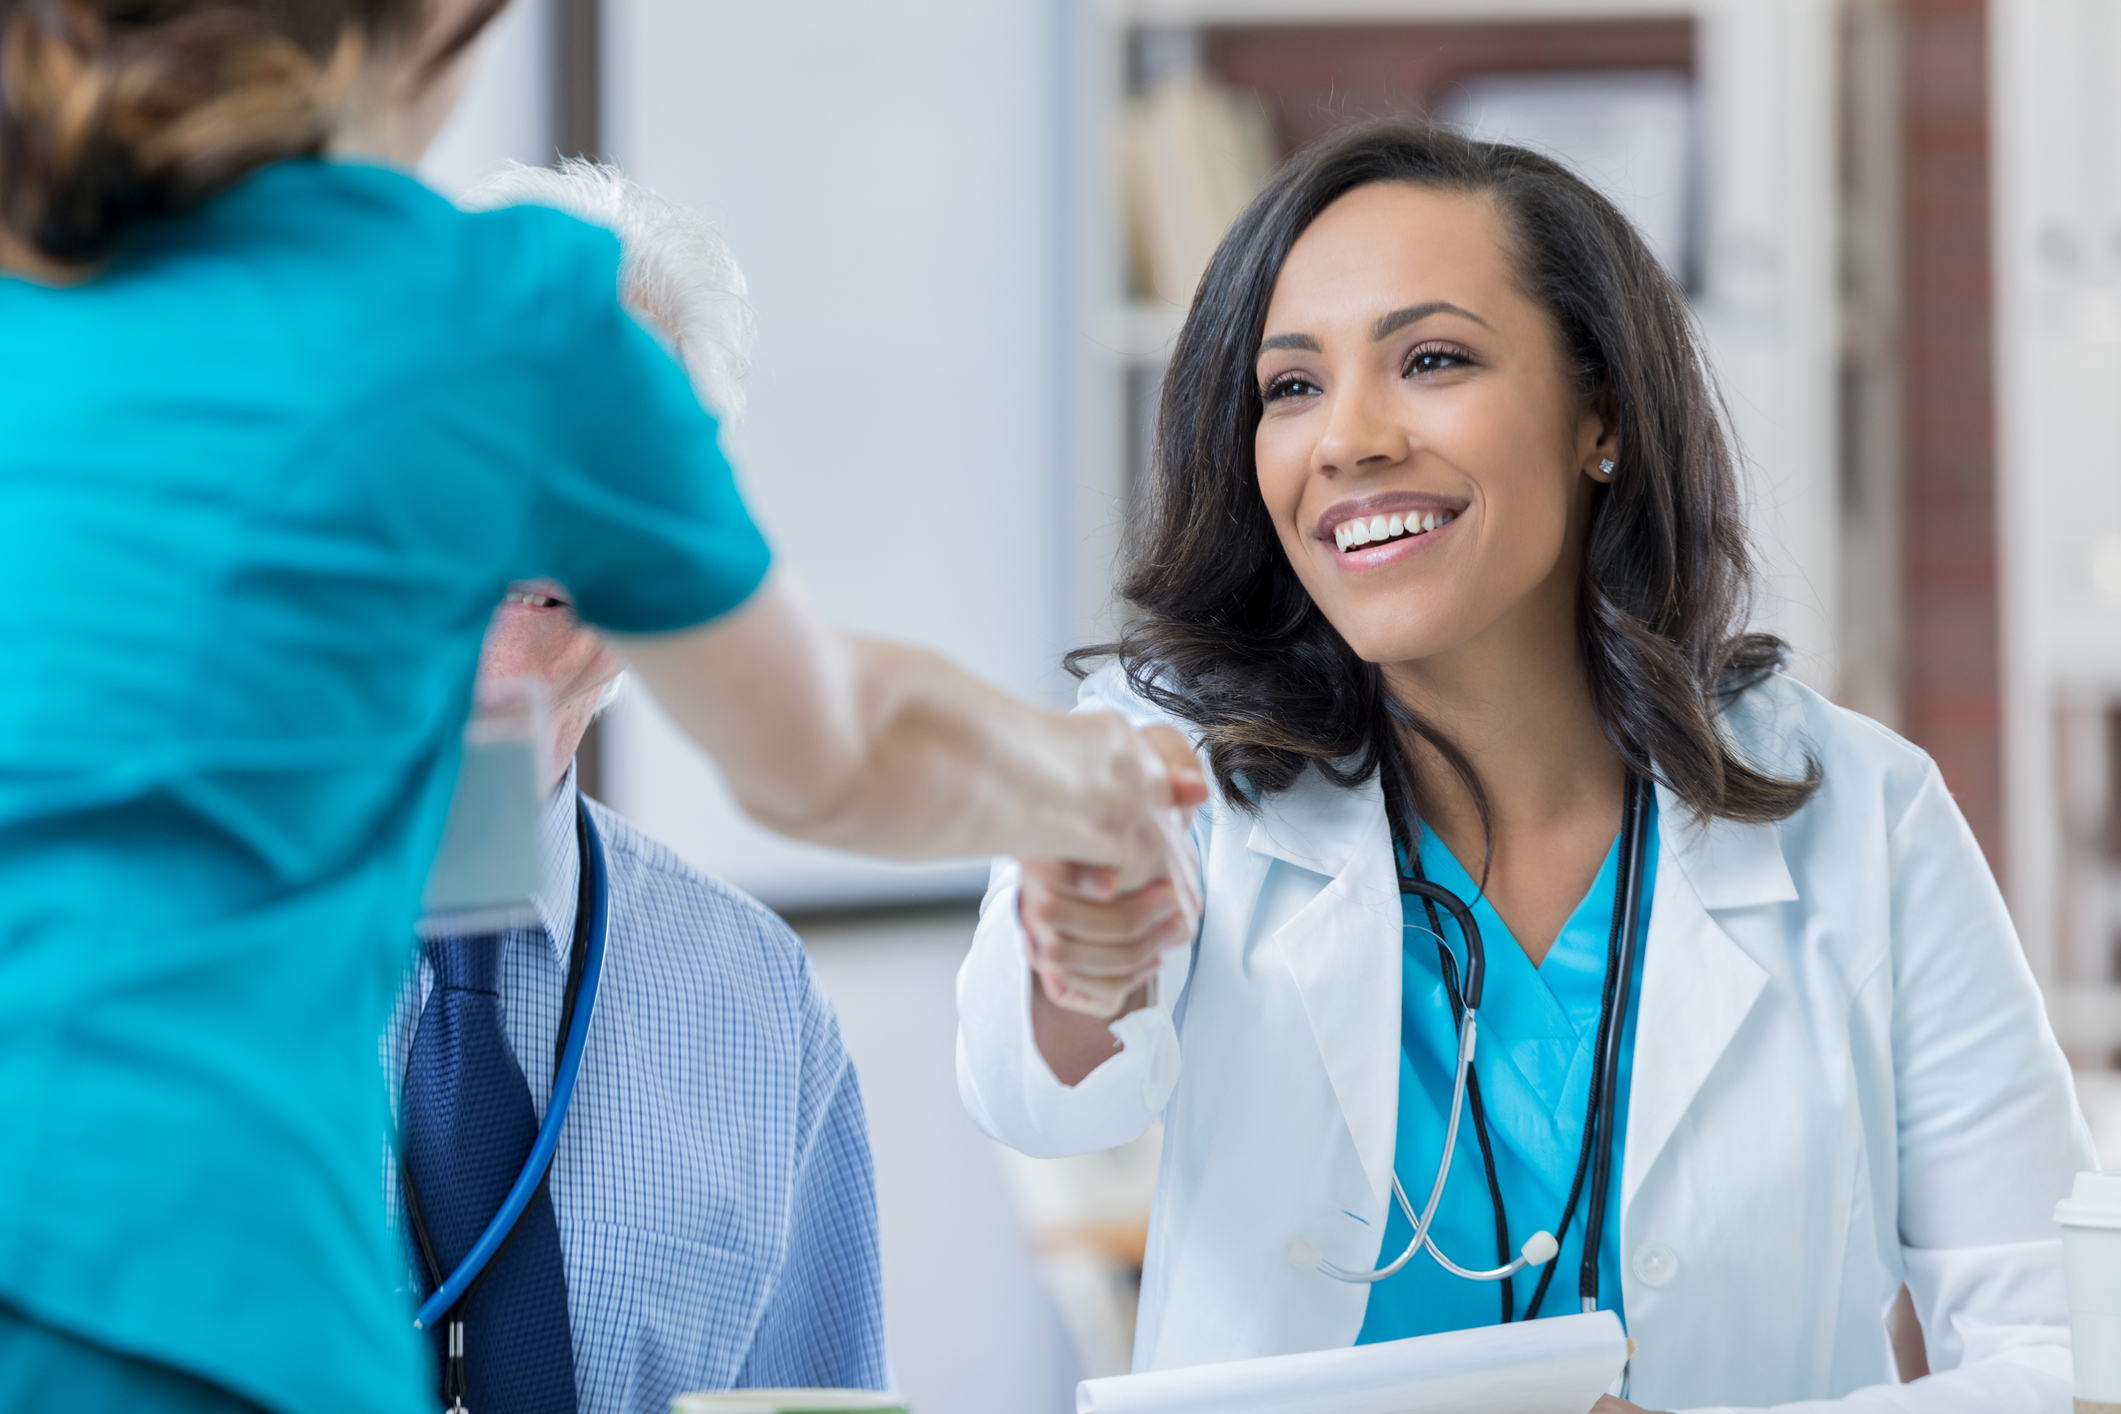 Beautiful mixed race doctor greets a nurse during job interview. The women are shaking hands.